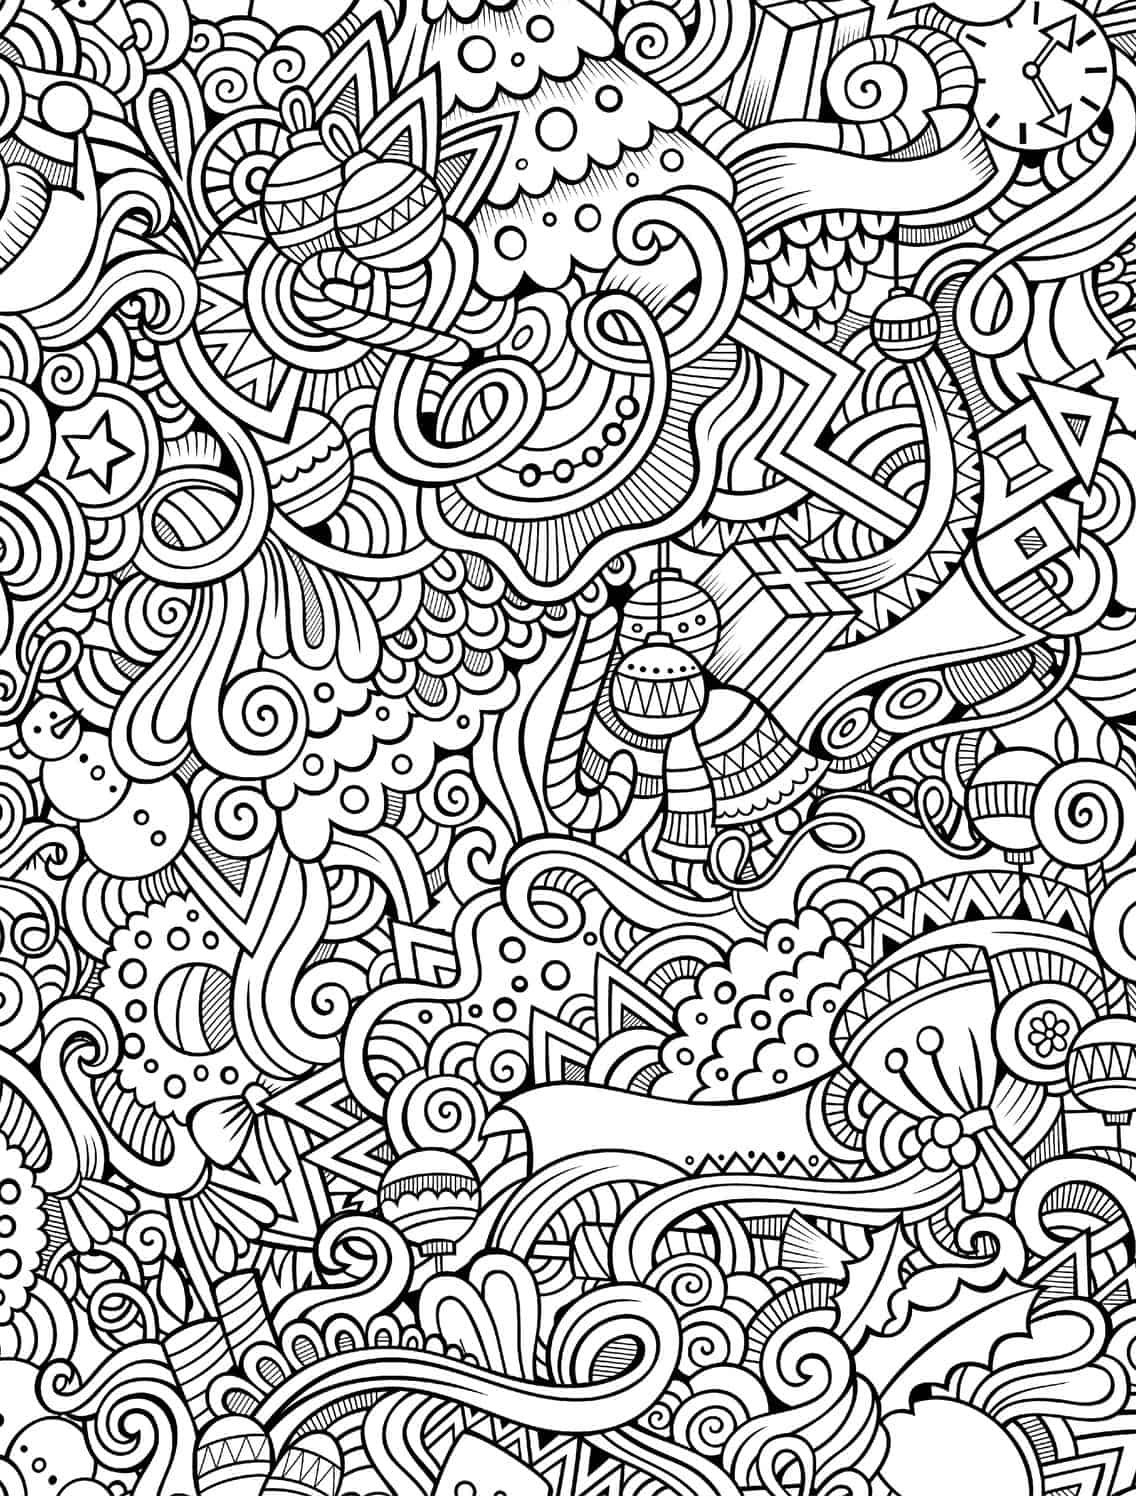 Coloring book pages for christmas - Jpeg For All Here